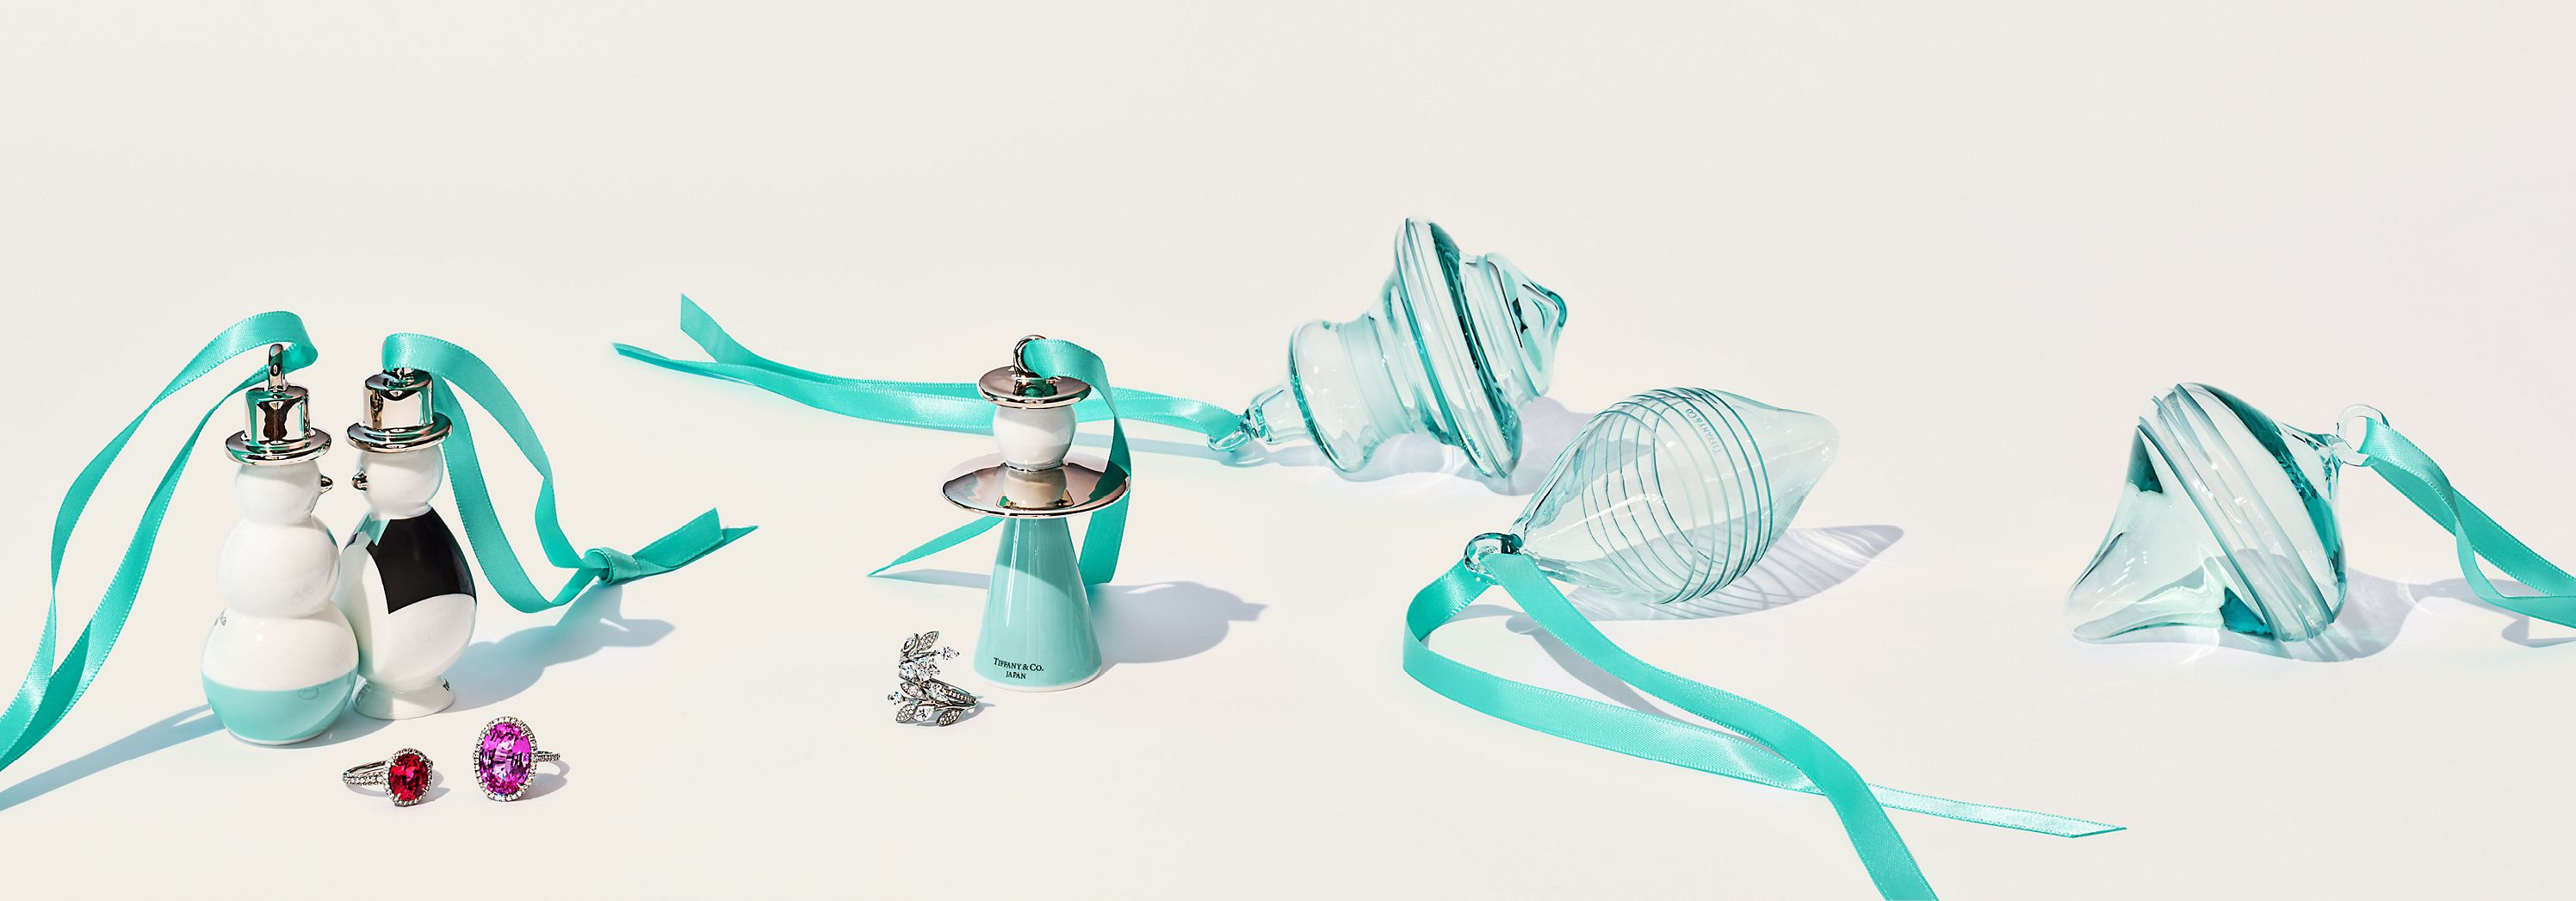 Scopri e acquista le decorazioni Tiffany & Co.